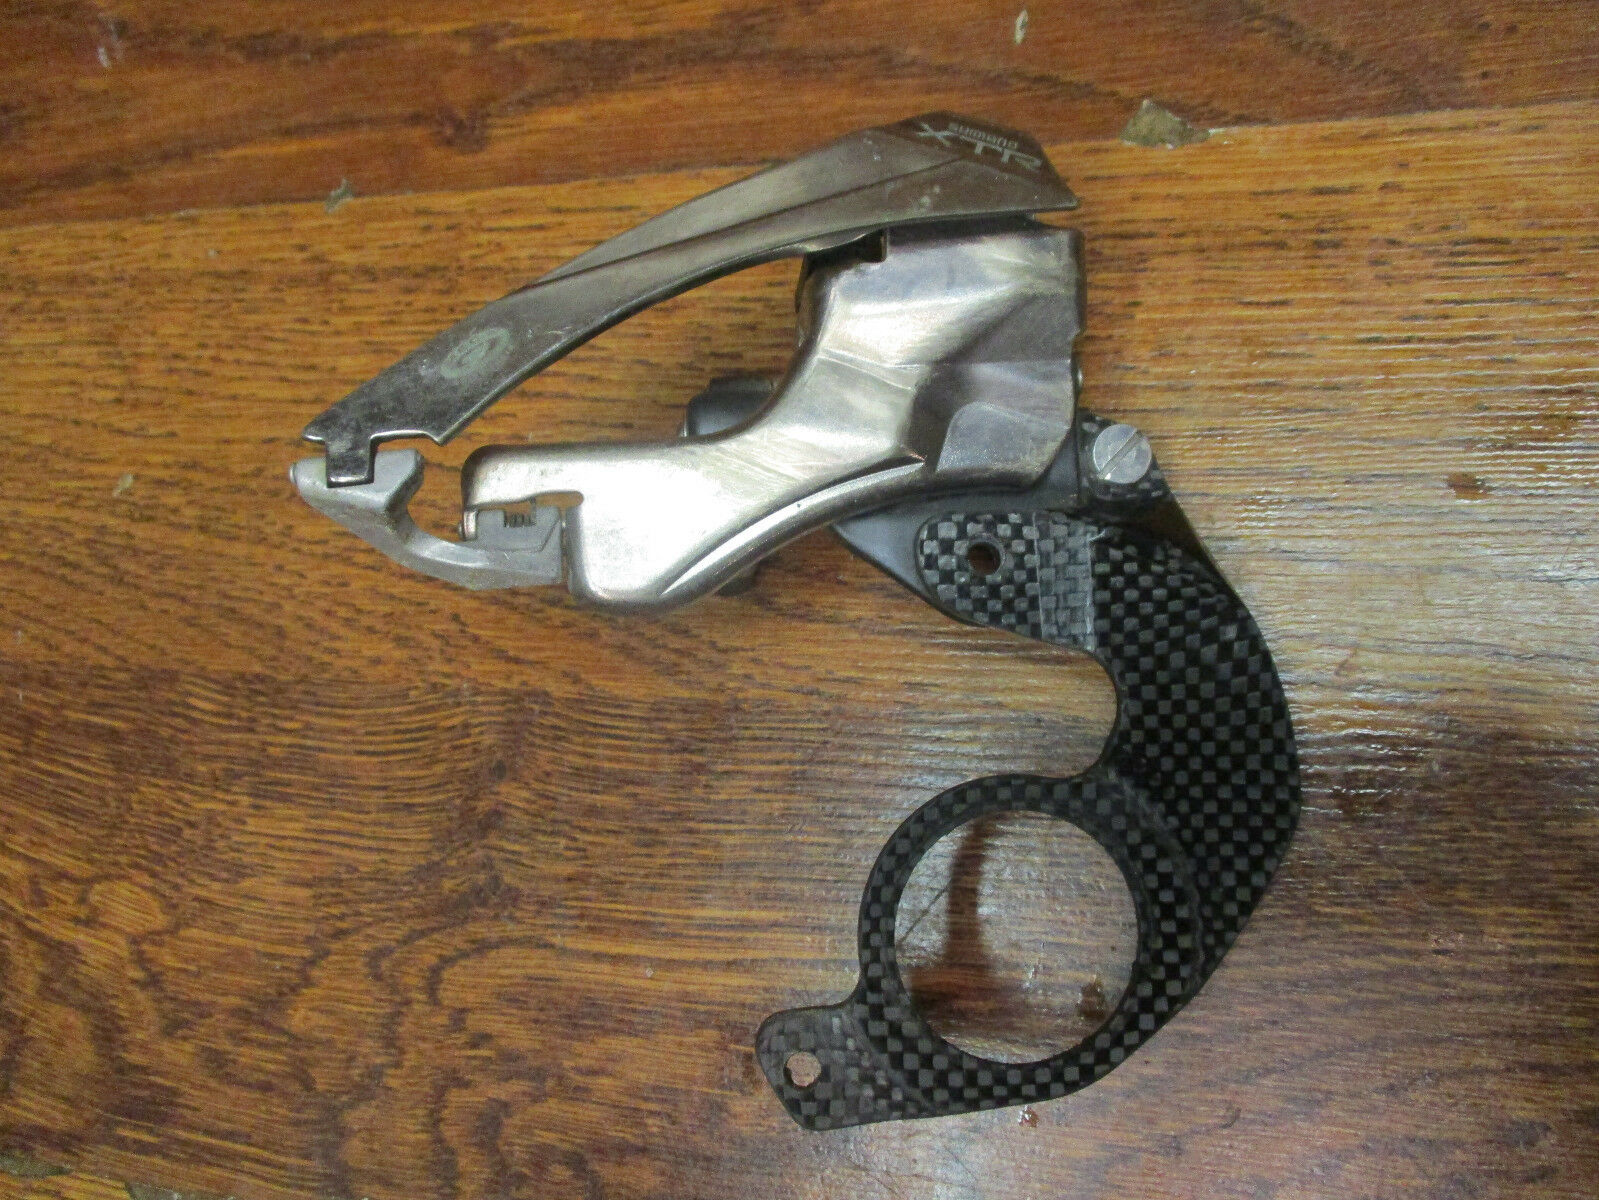 NOS SHIMANO XTR FD-M952 MEGA 9 TRIPLE BB MOUNT  TOP PULL FRONT DERAILLEUR  best offer